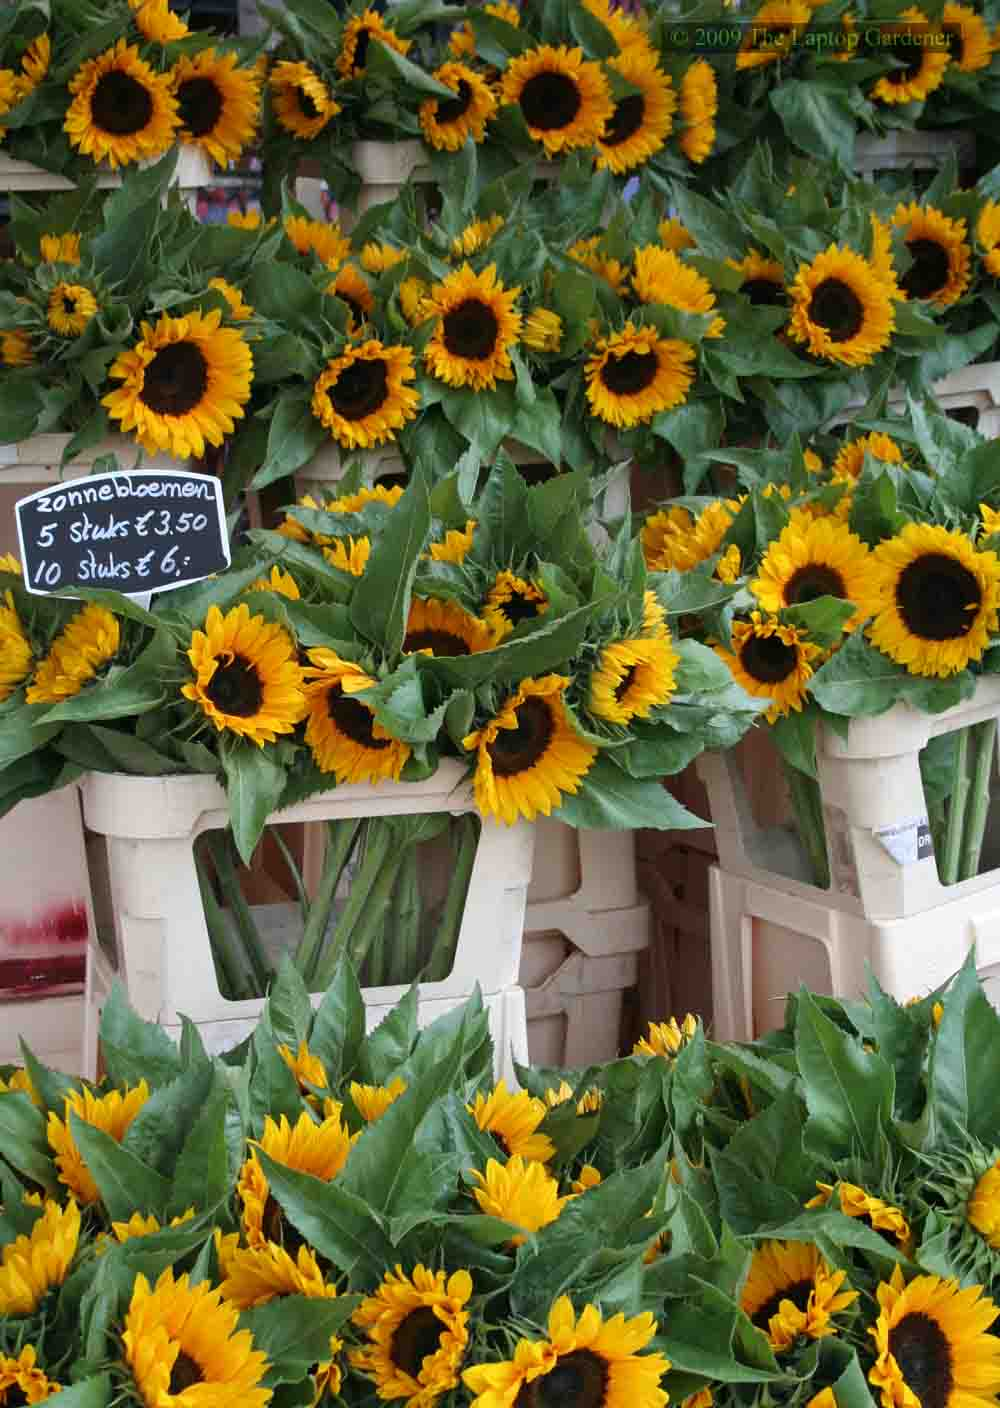 Cheery sunflower greetings at the floating flower market (Bloemenmarkt) in Amsterdam.